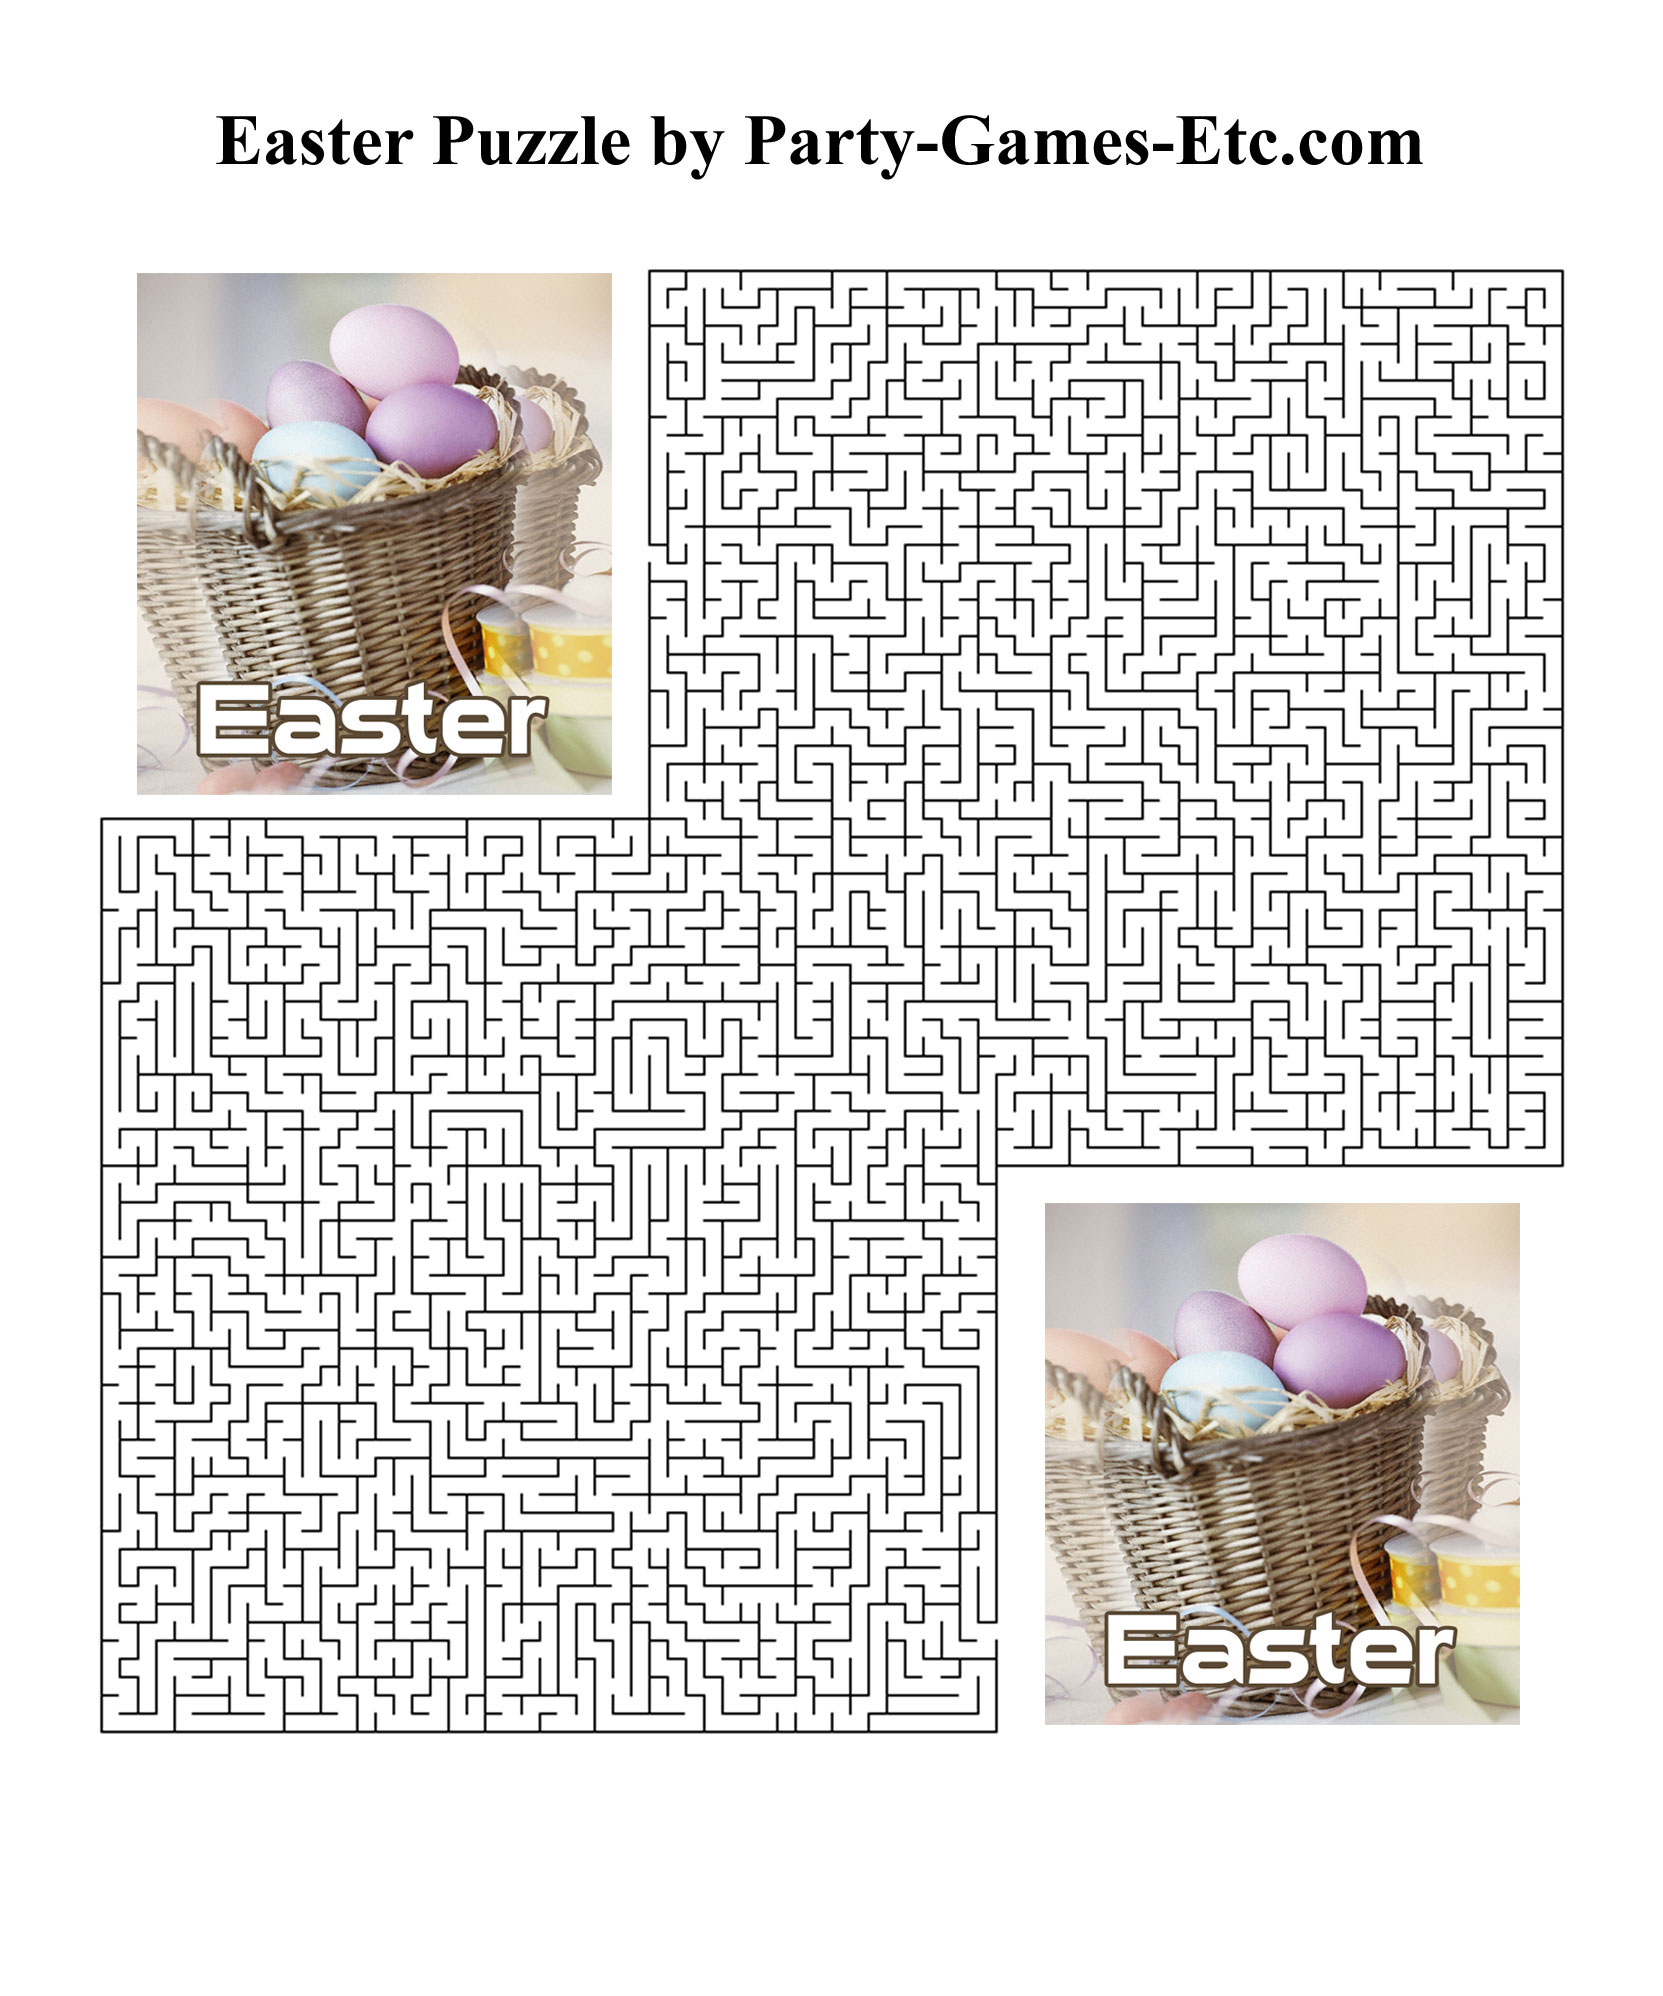 Easter Party Games, Free Printable Games and Activities for a Holiday ...